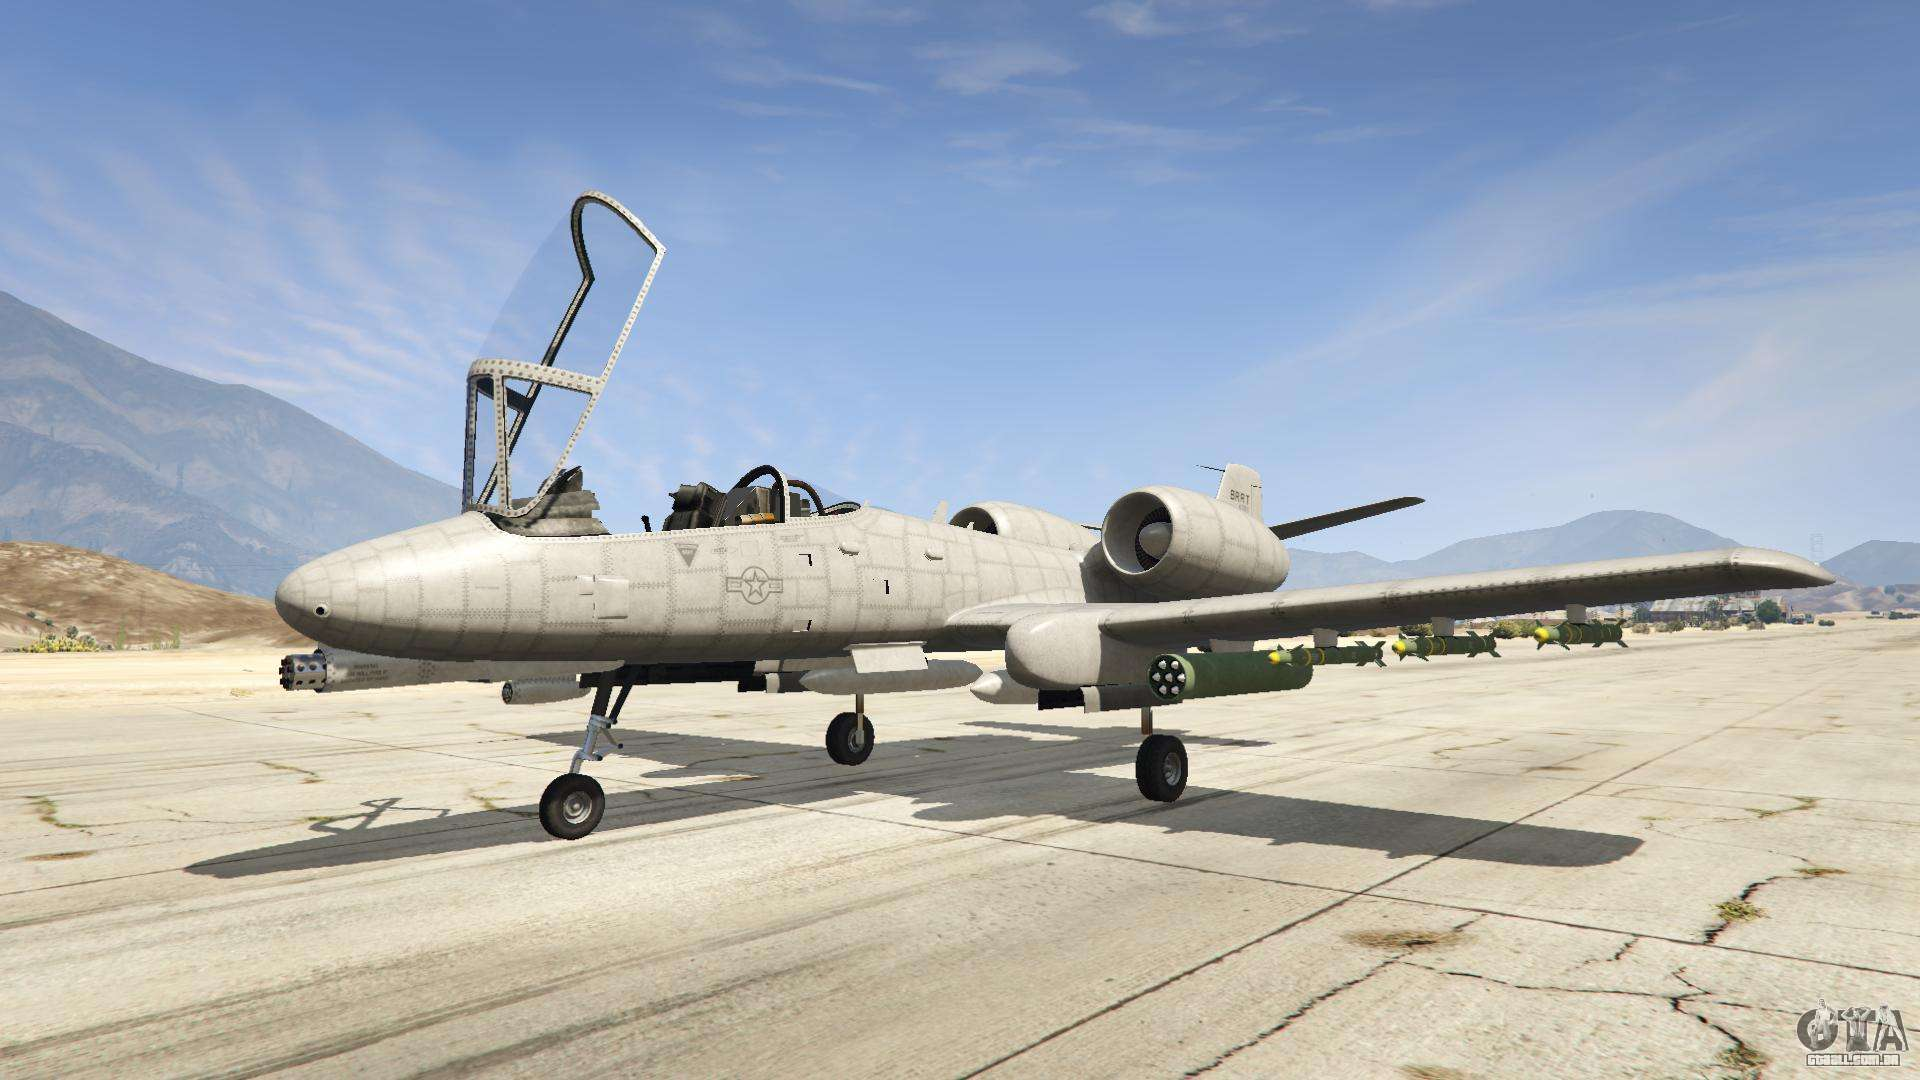 B-11 Strikeforce GTA 5